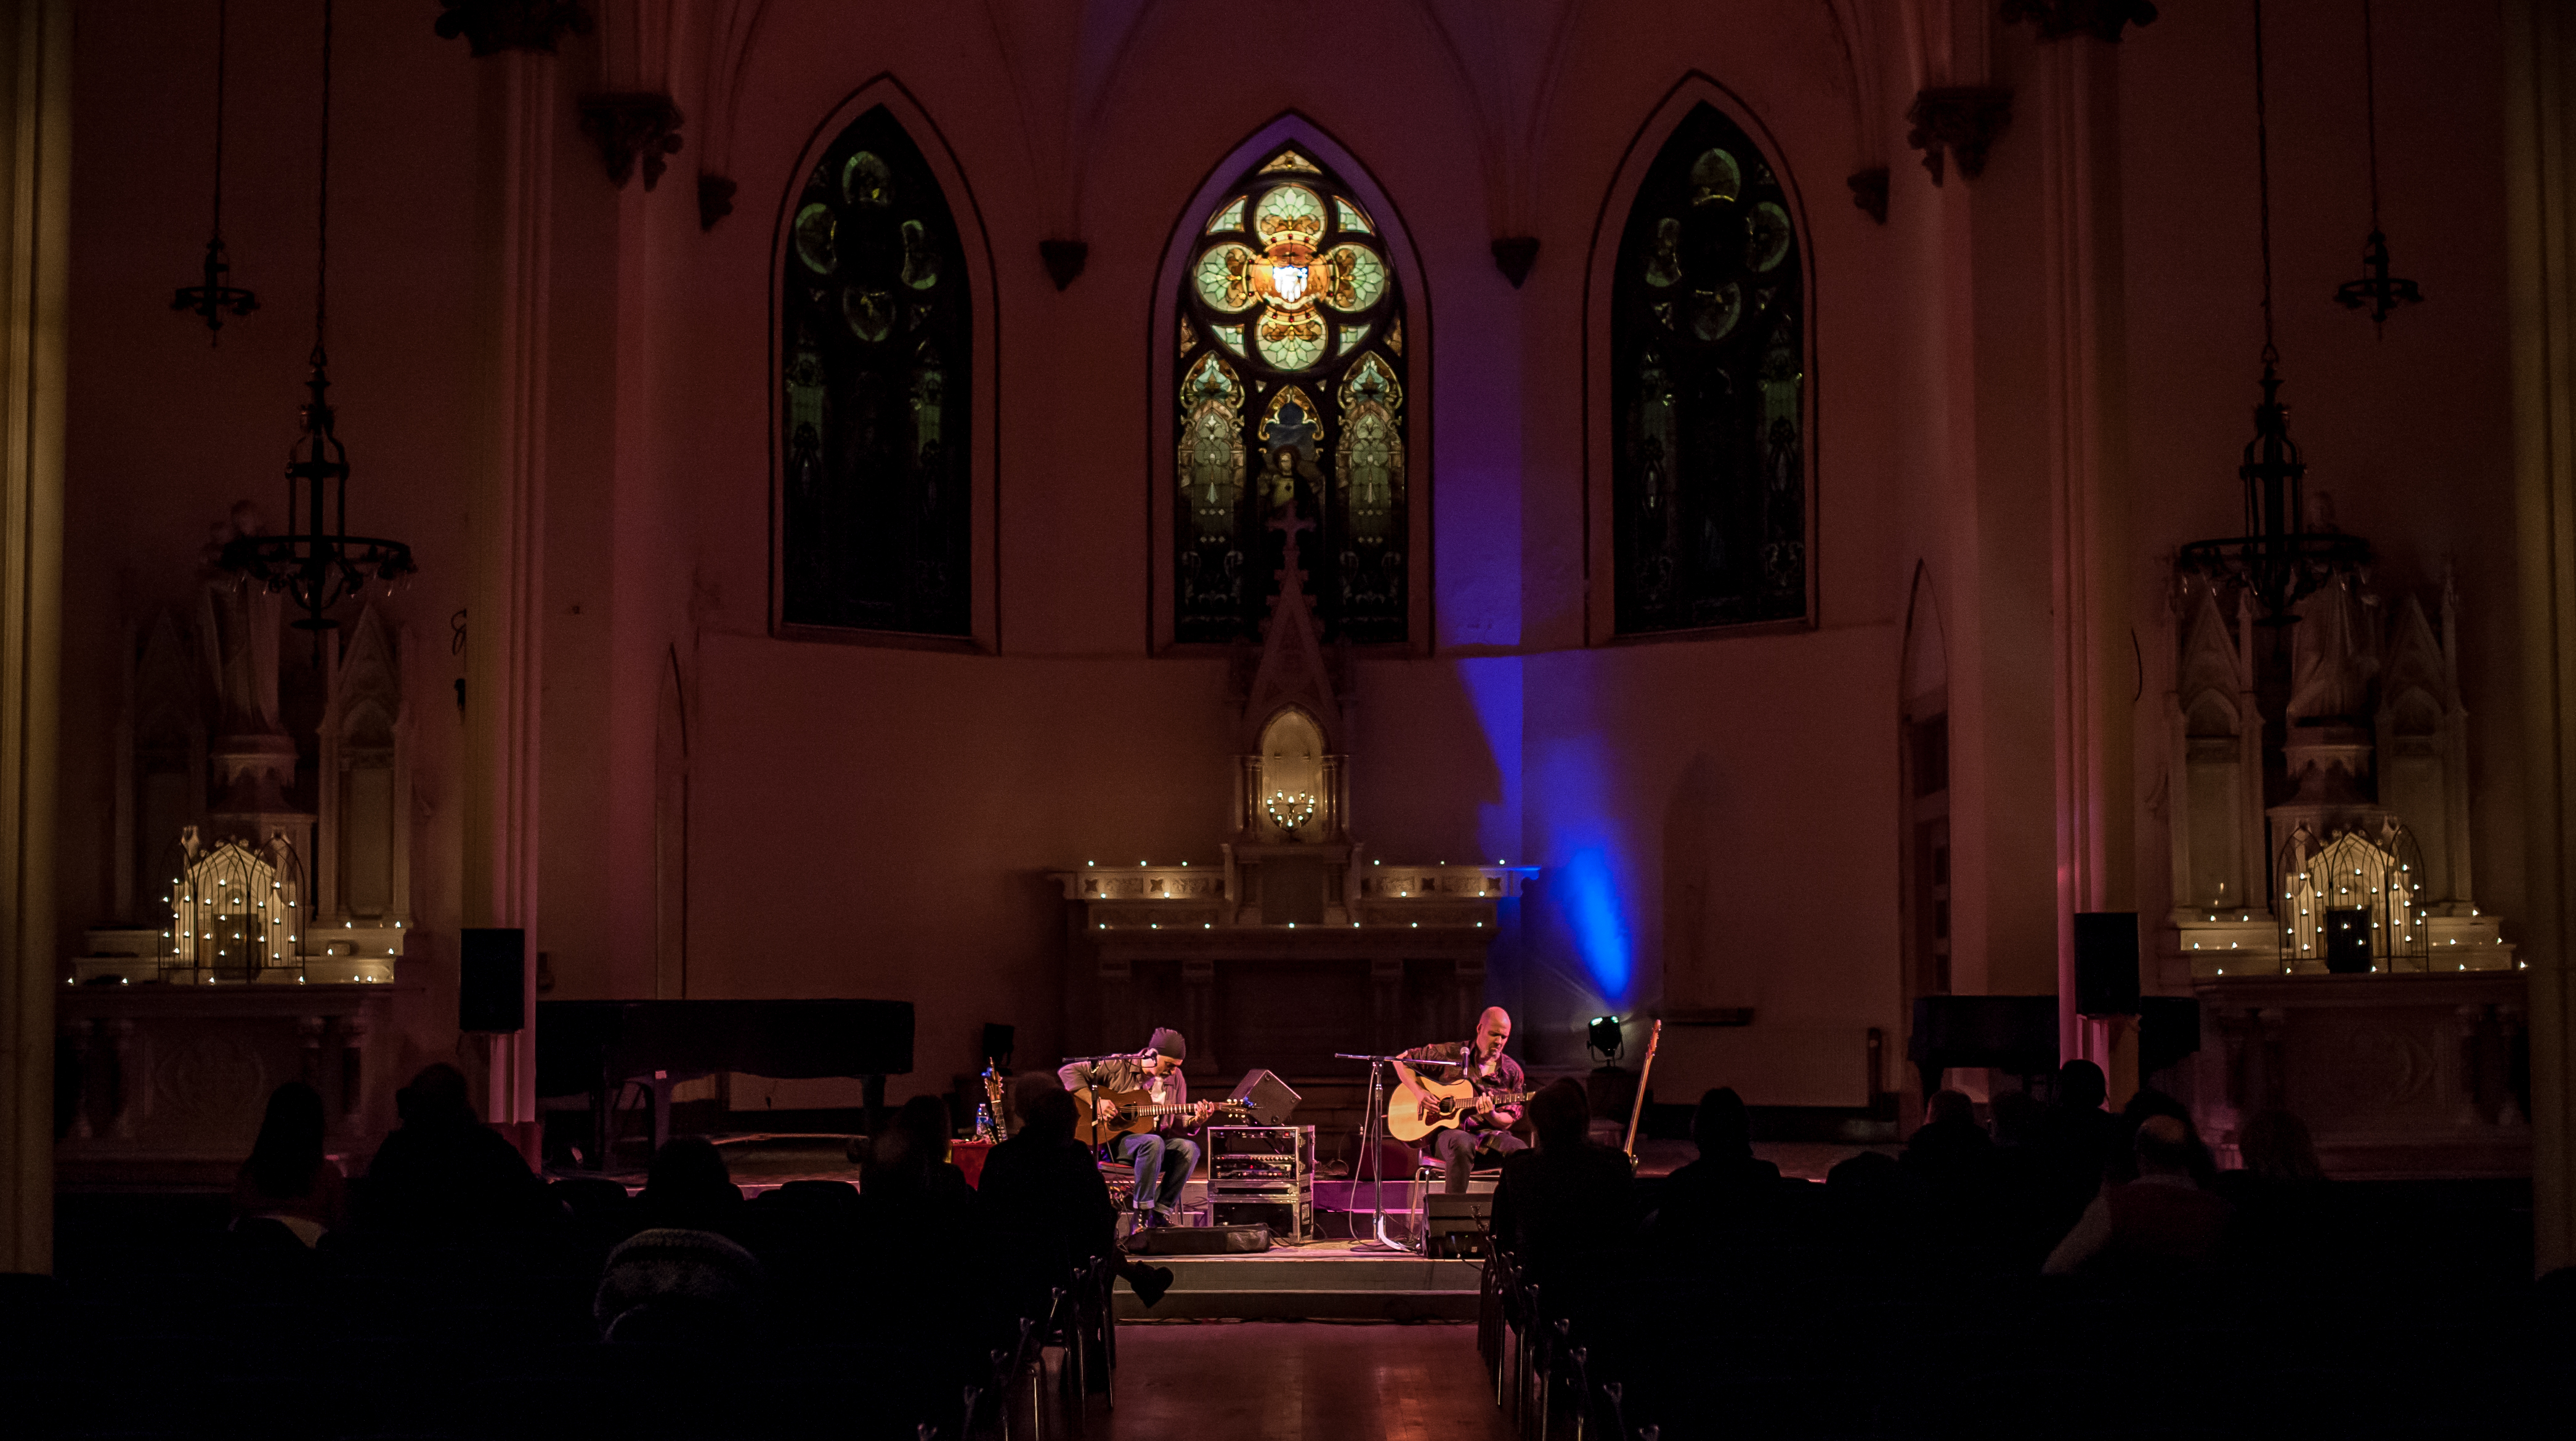 Home To Musical Performances Weddings And Receptions Meetings Arts Education Events Sacred Heart Is A Landmark In Duluths Central Hillside